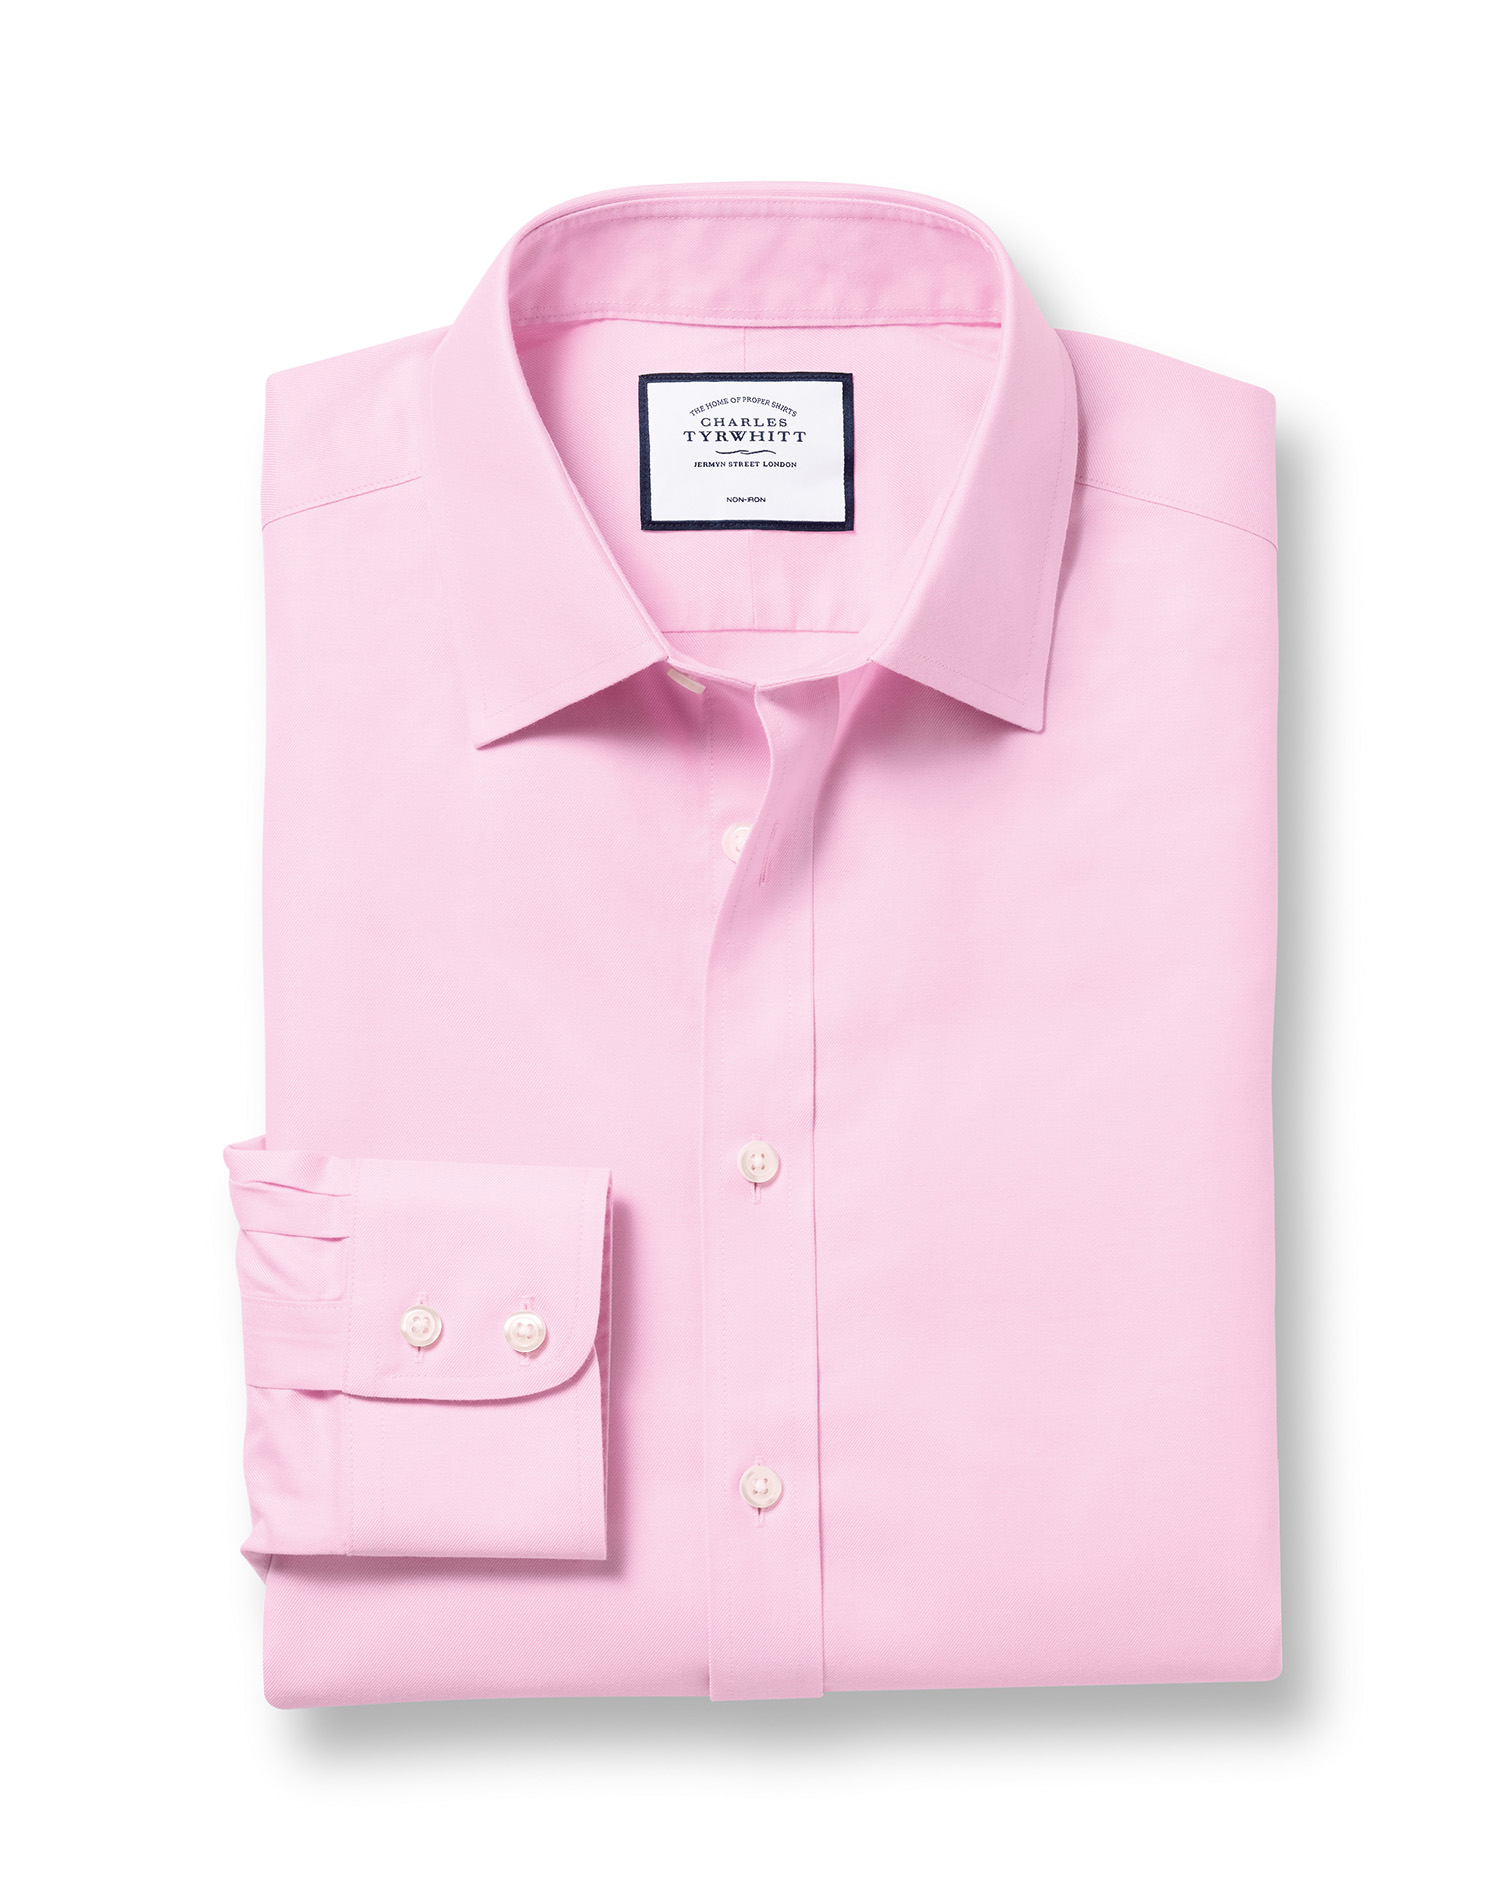 Slim Fit Non-Iron Twill Pink Cotton Formal Shirt Single Cuff Size 17.5/35 by Charles Tyrwhitt